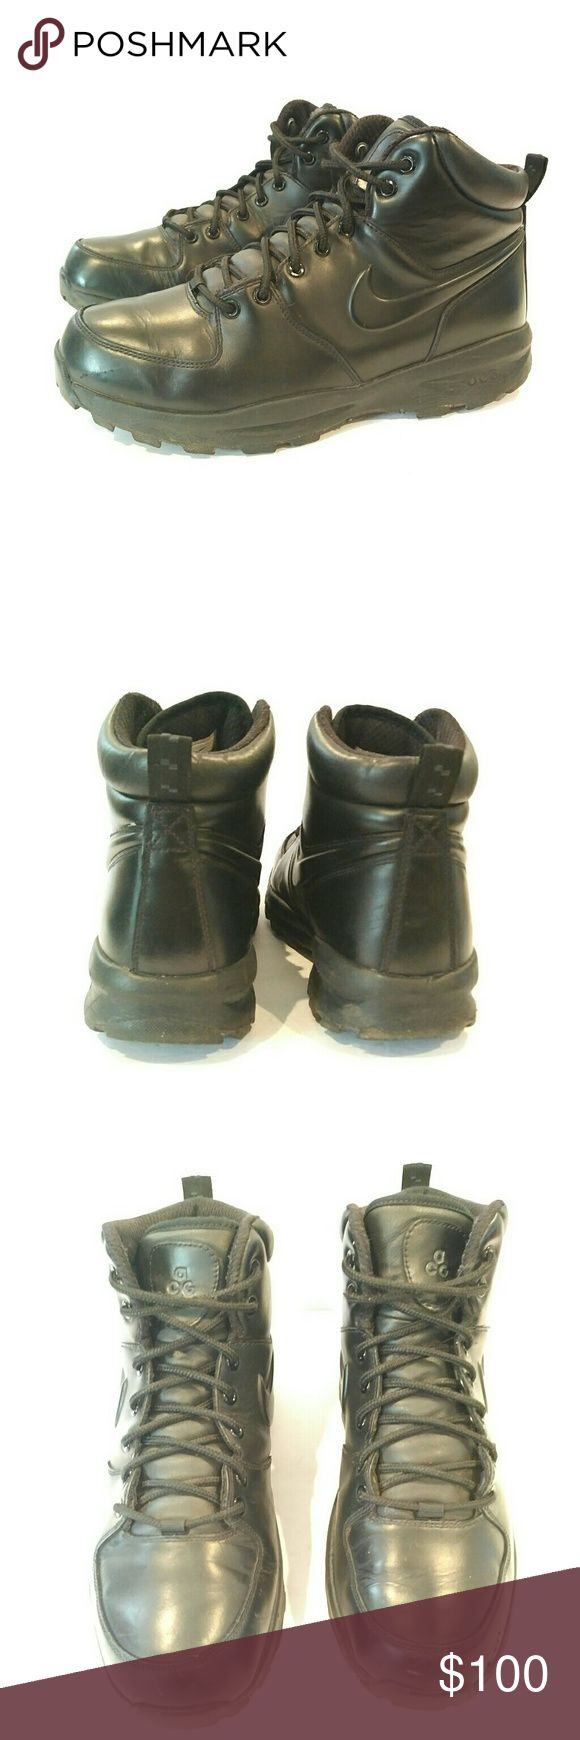 Nike Acg mens waterproof work boots 10.5 Nike acg mens 10.5 Mens black leather boots Rubber soles excellent  Missing insoles and a few marks in leather Not noticeable when wearing Make an offer Nike ACG Shoes Rain & Snow Boots